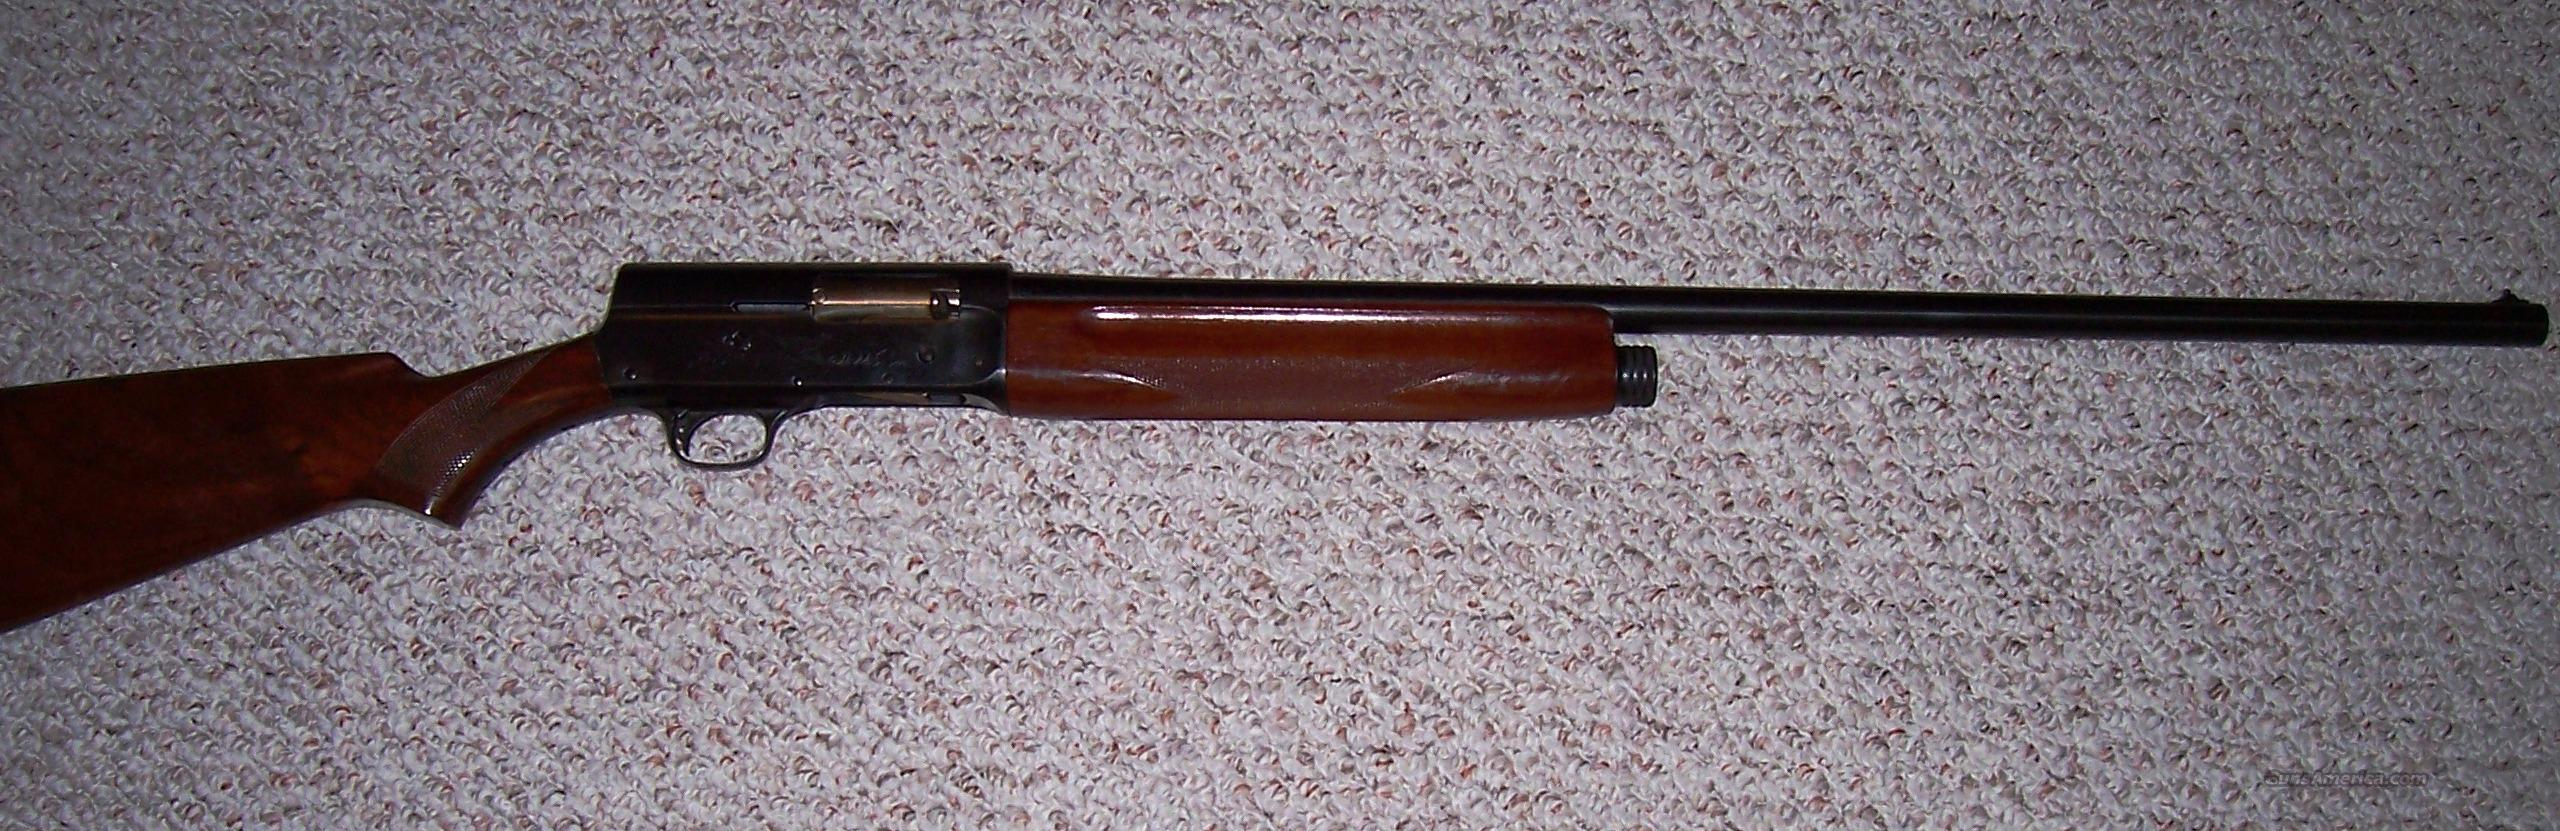 REMINGTON MODEL 11  Guns > Shotguns > Remington Shotguns  > Autoloaders > Hunting